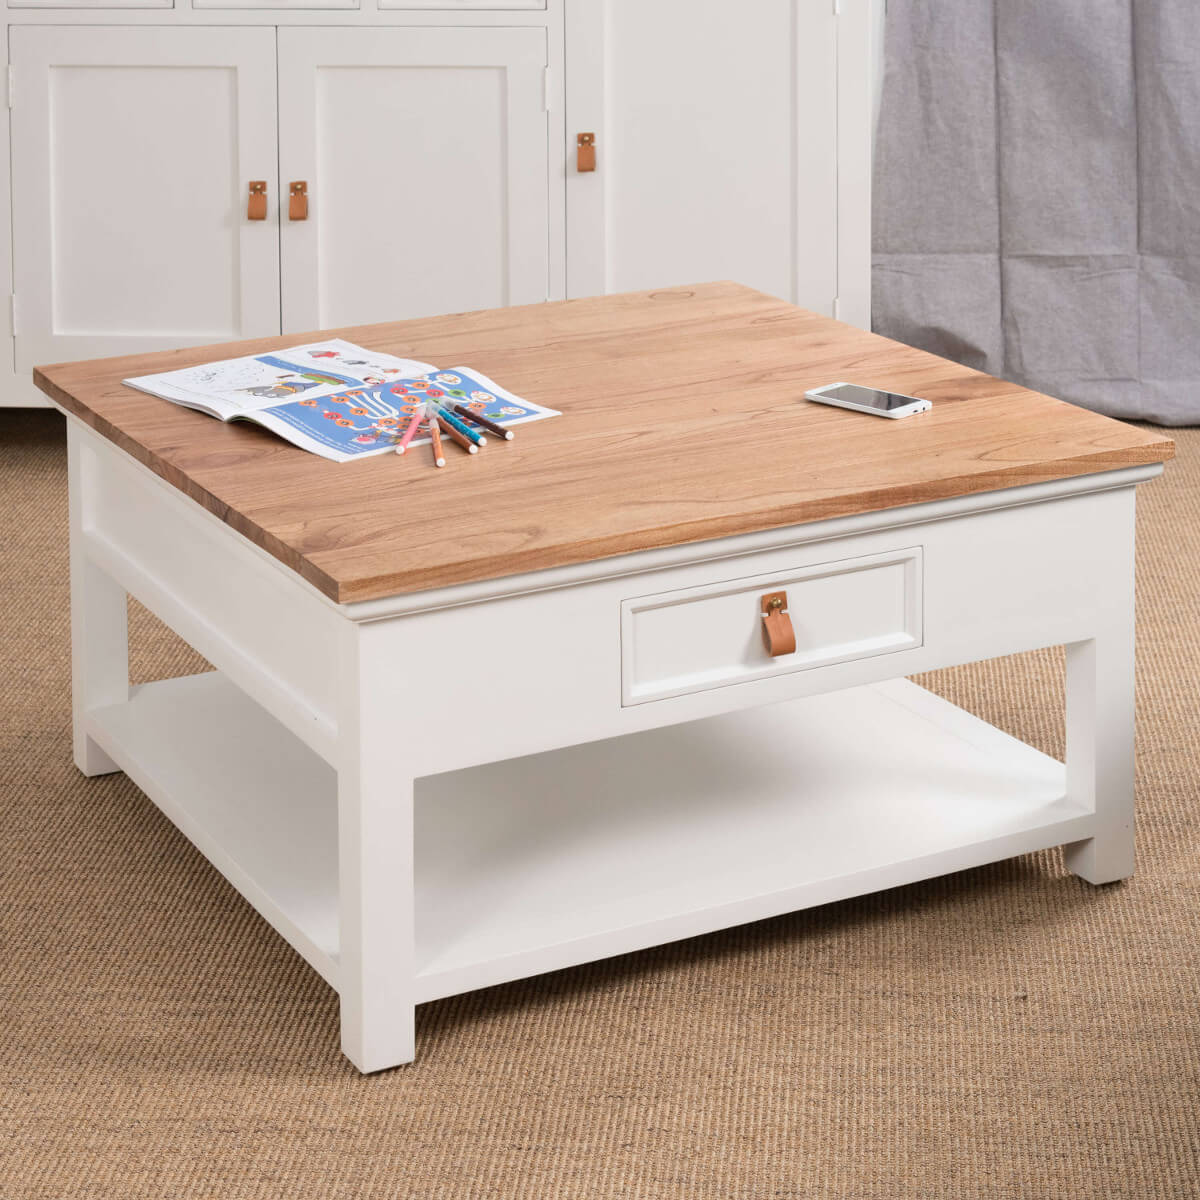 Table basse blanche table basse acajou carr e bois for Table de salon en bois